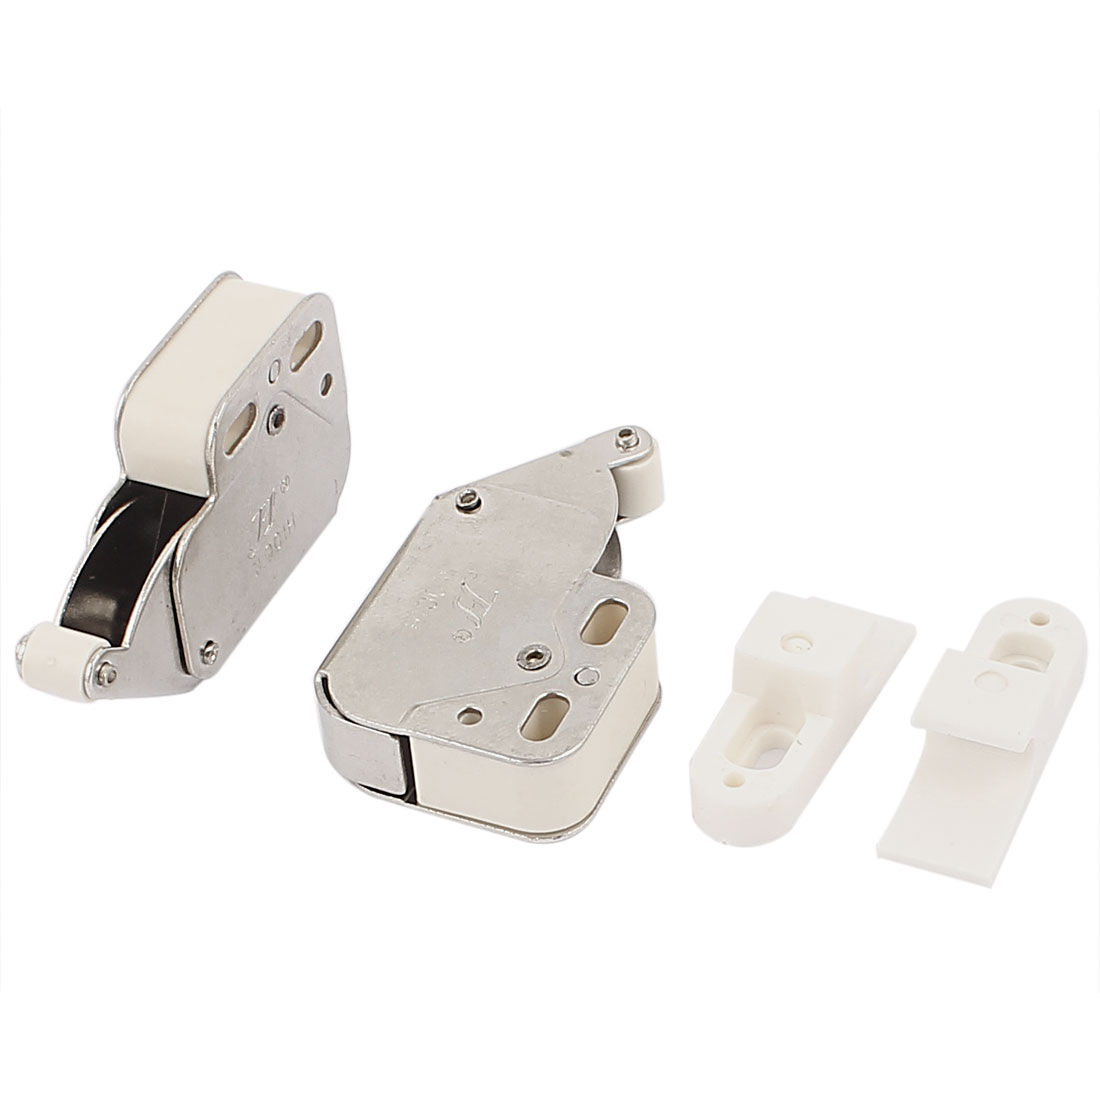 Spring Loaded Kitchen Cabinet Cupboard Door Push Catch Latch Lock 2Pcs